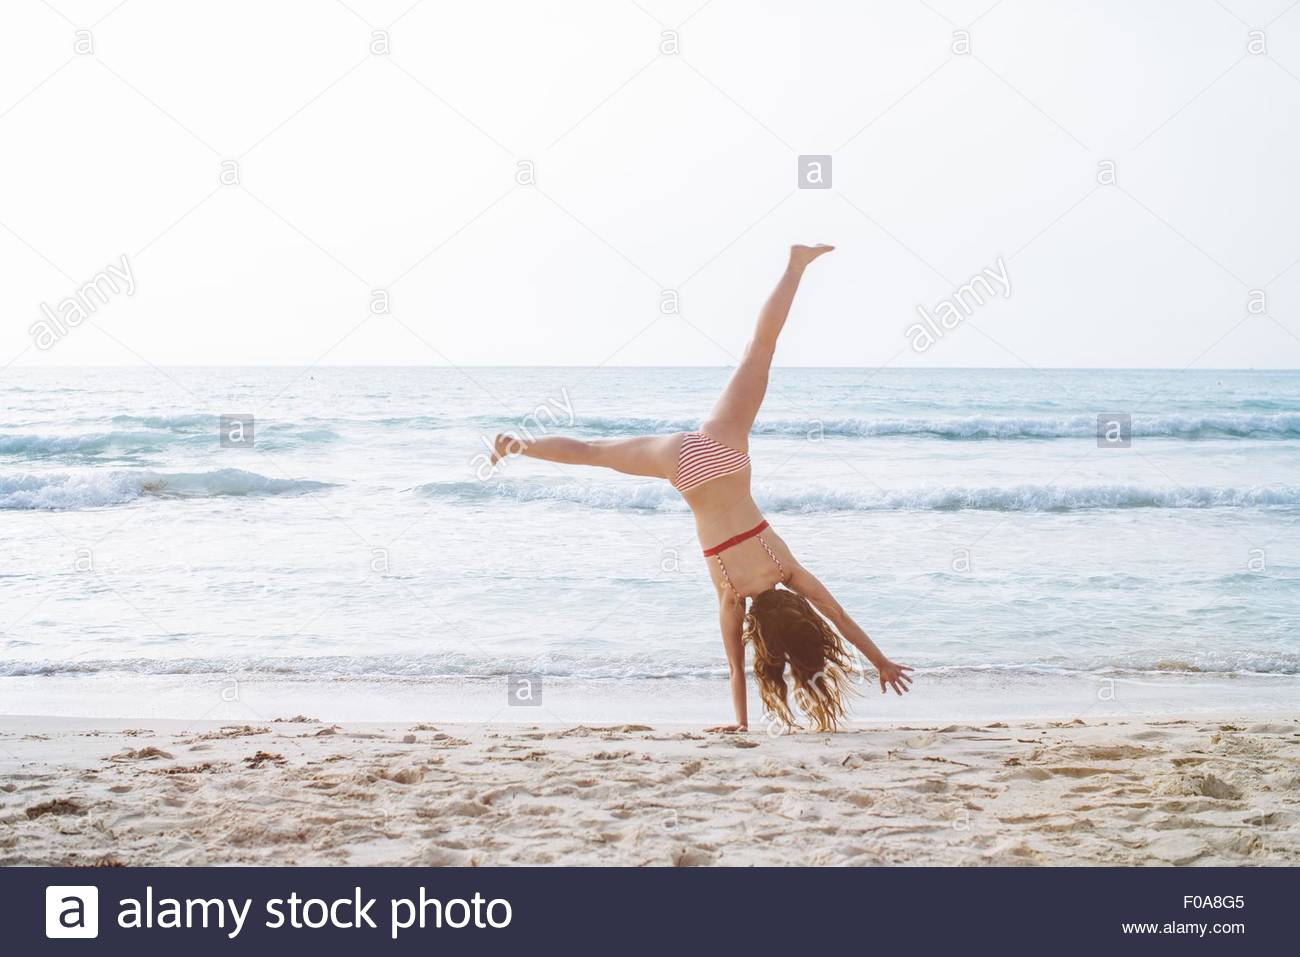 Young woman wearing bikini cartwheeling on beach - Stock Image